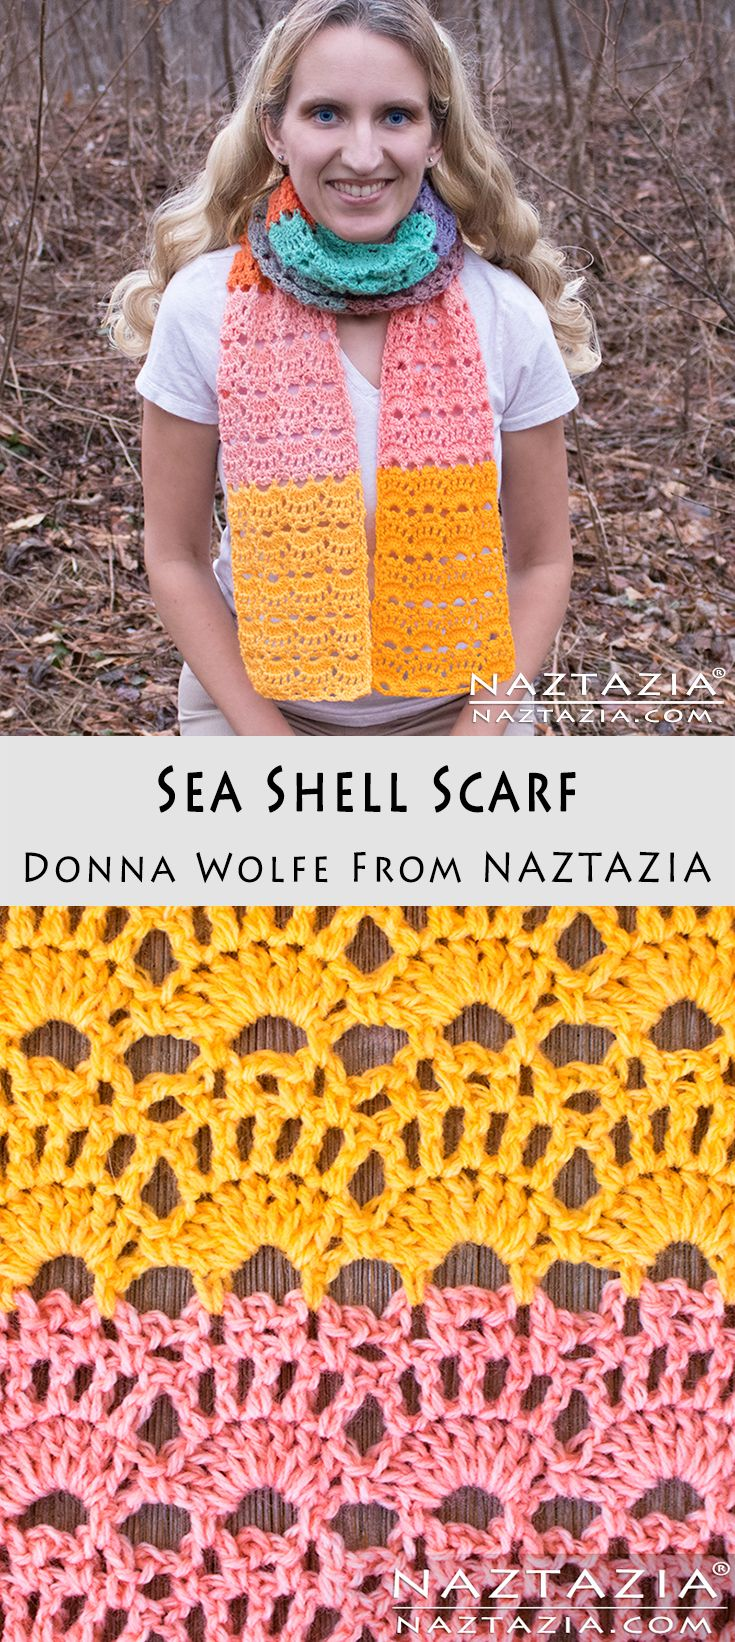 DIY Tutorial How to Crochet Sea Shelf Scarf Free Pattern with YouTube Video by Donna Wolfe from Naztazia